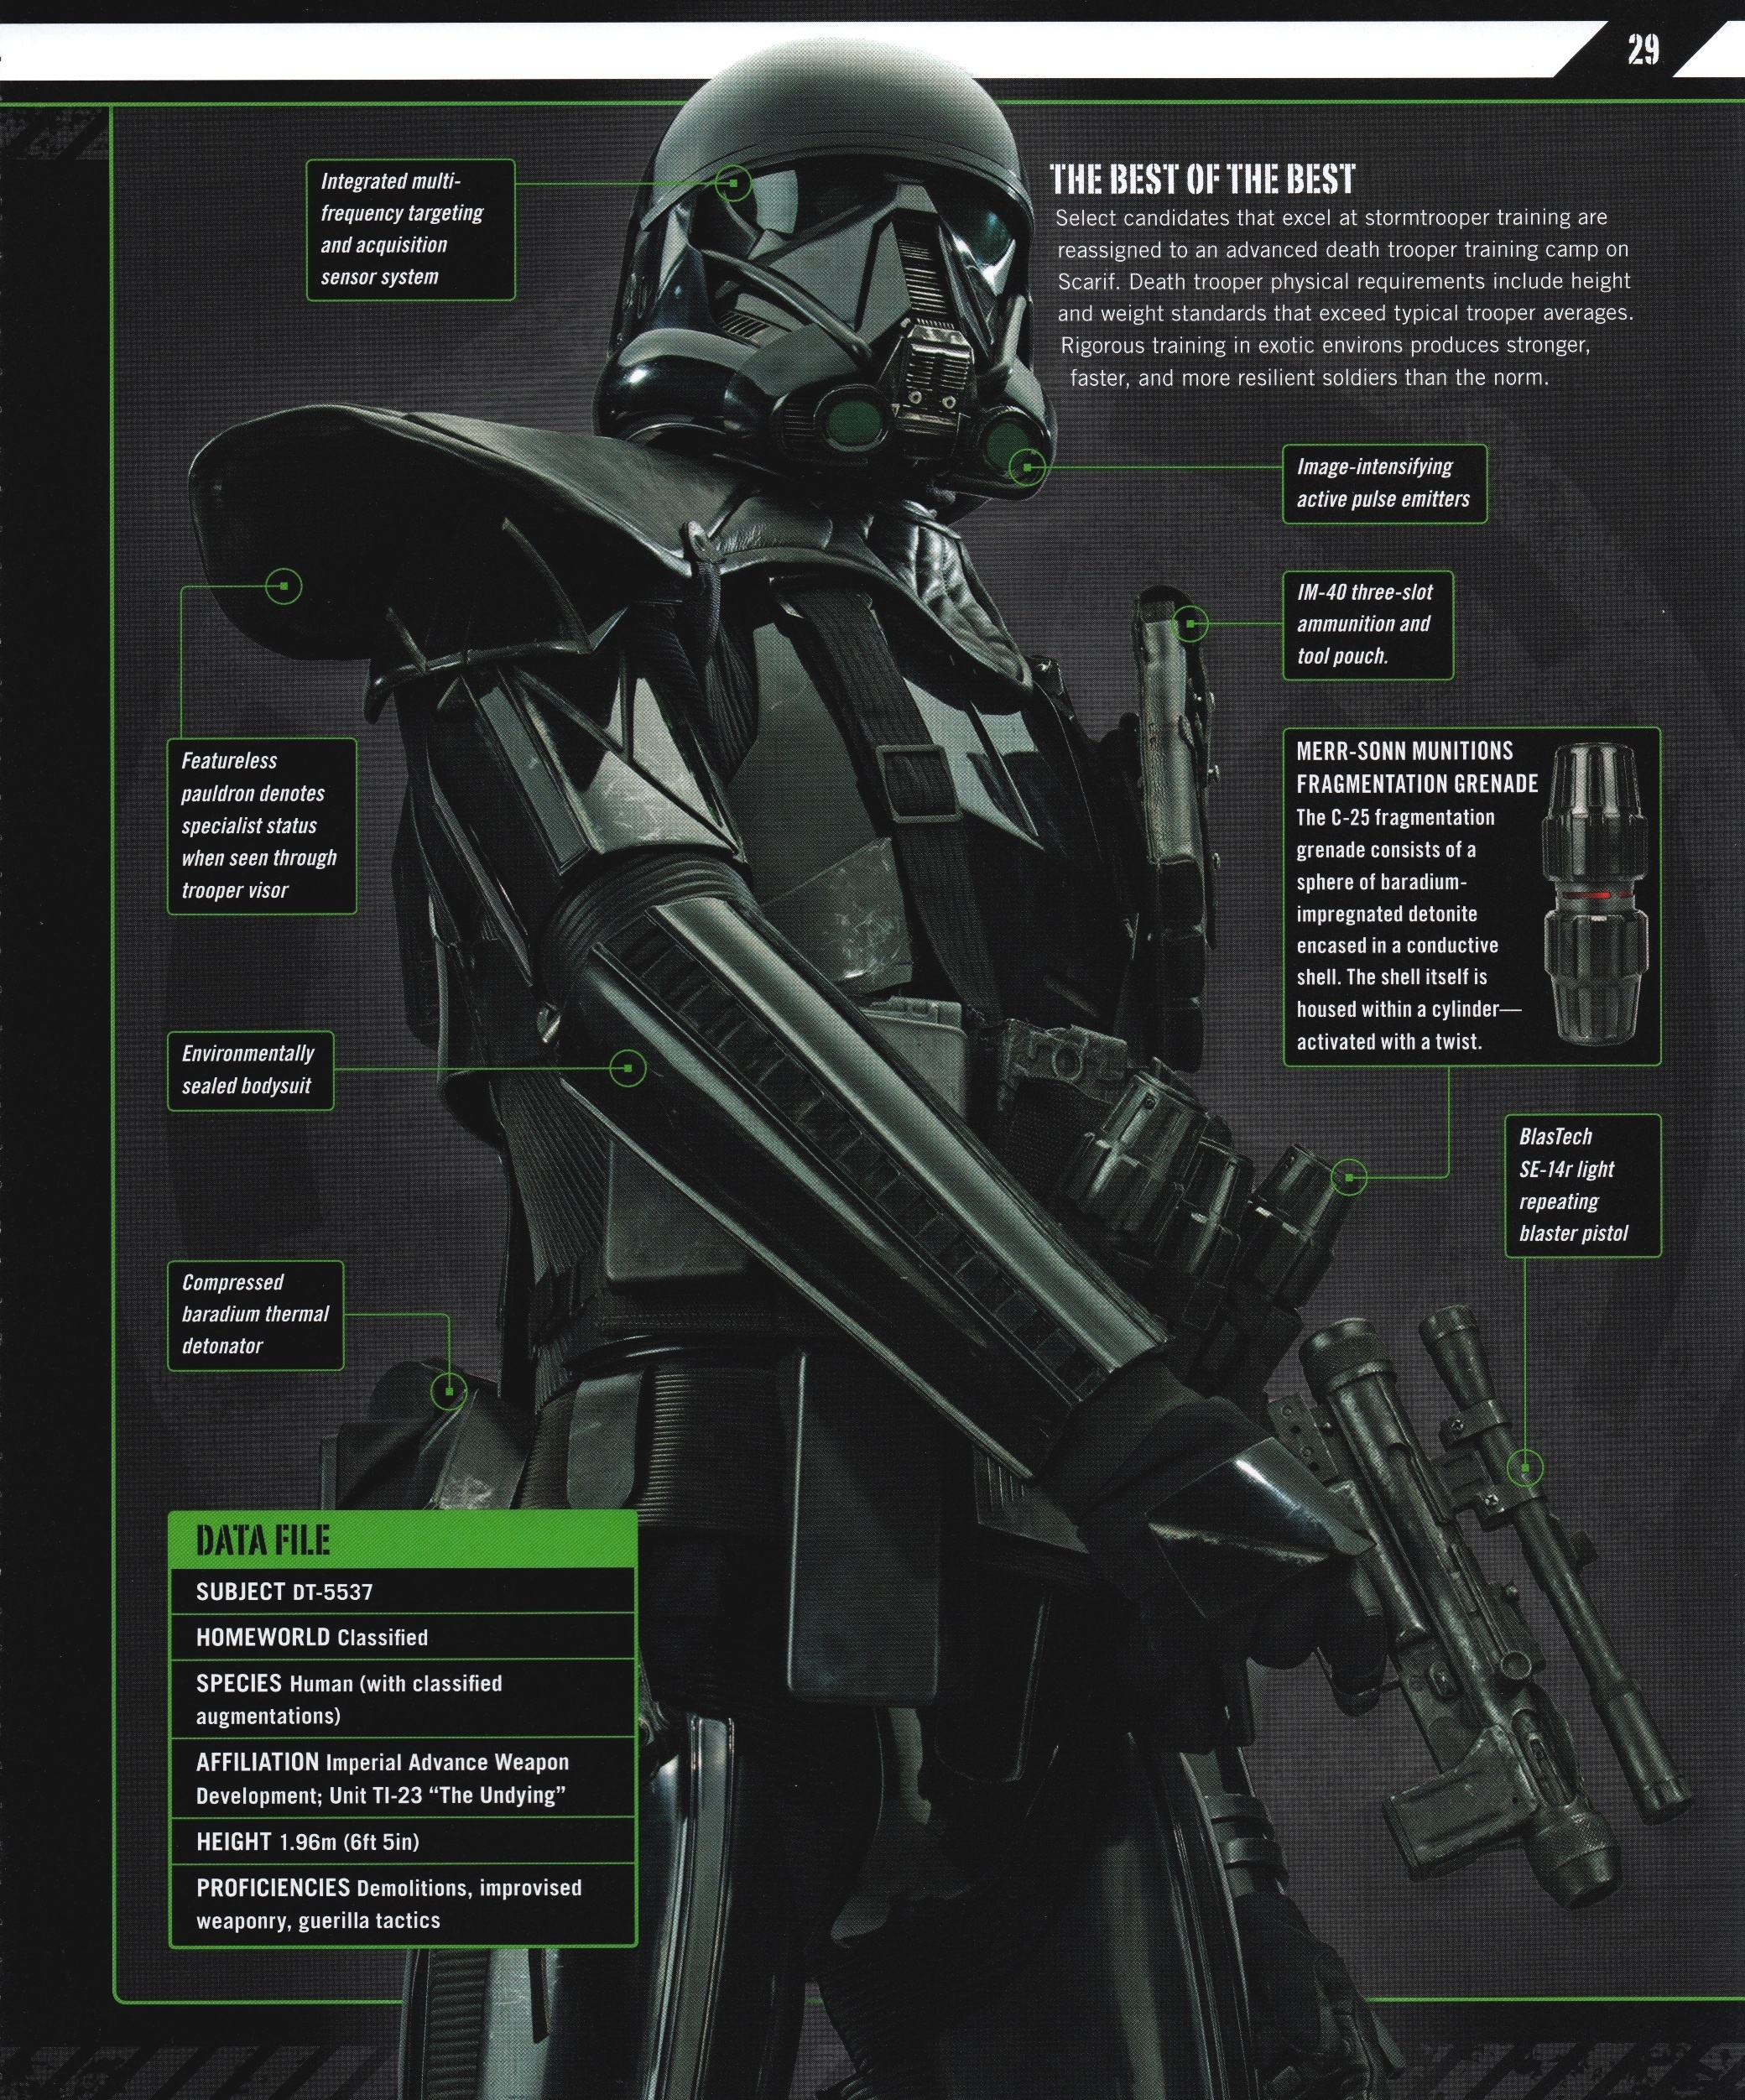 Rogue One Ultimate Visual Guide (b0bafett_Empire) p029